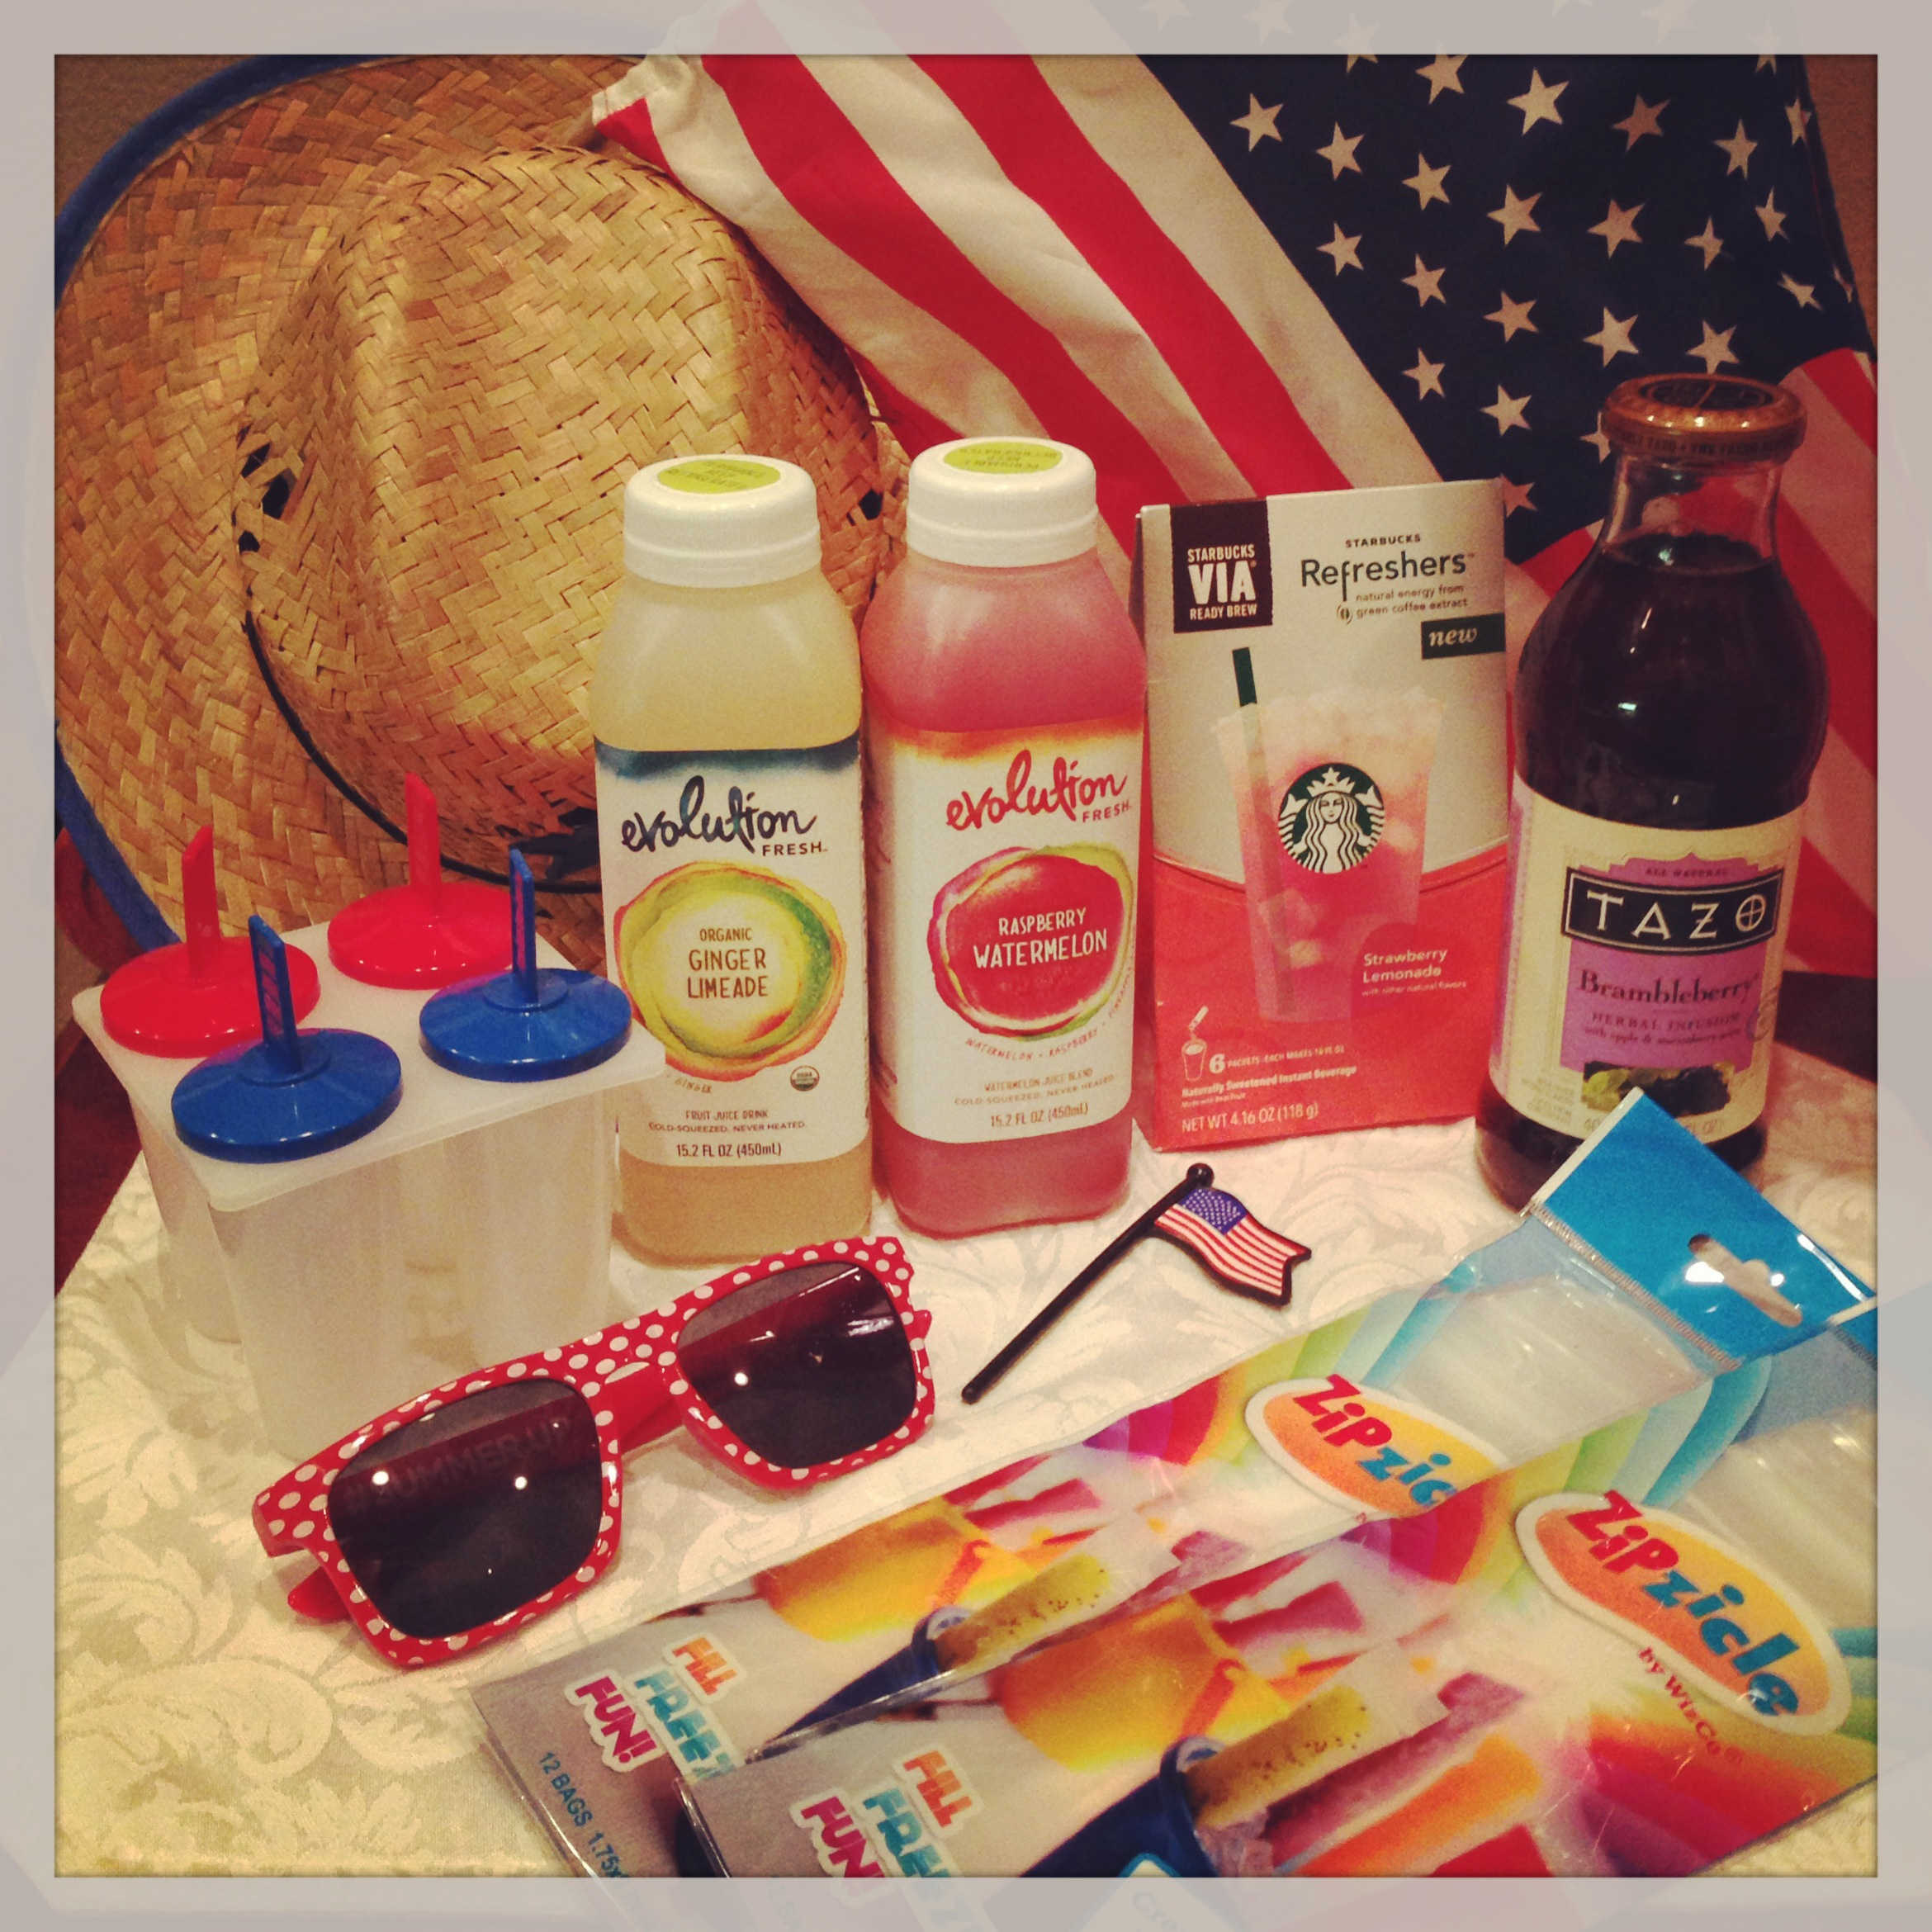 Starbucks Patriotic Popsicle Ingredients